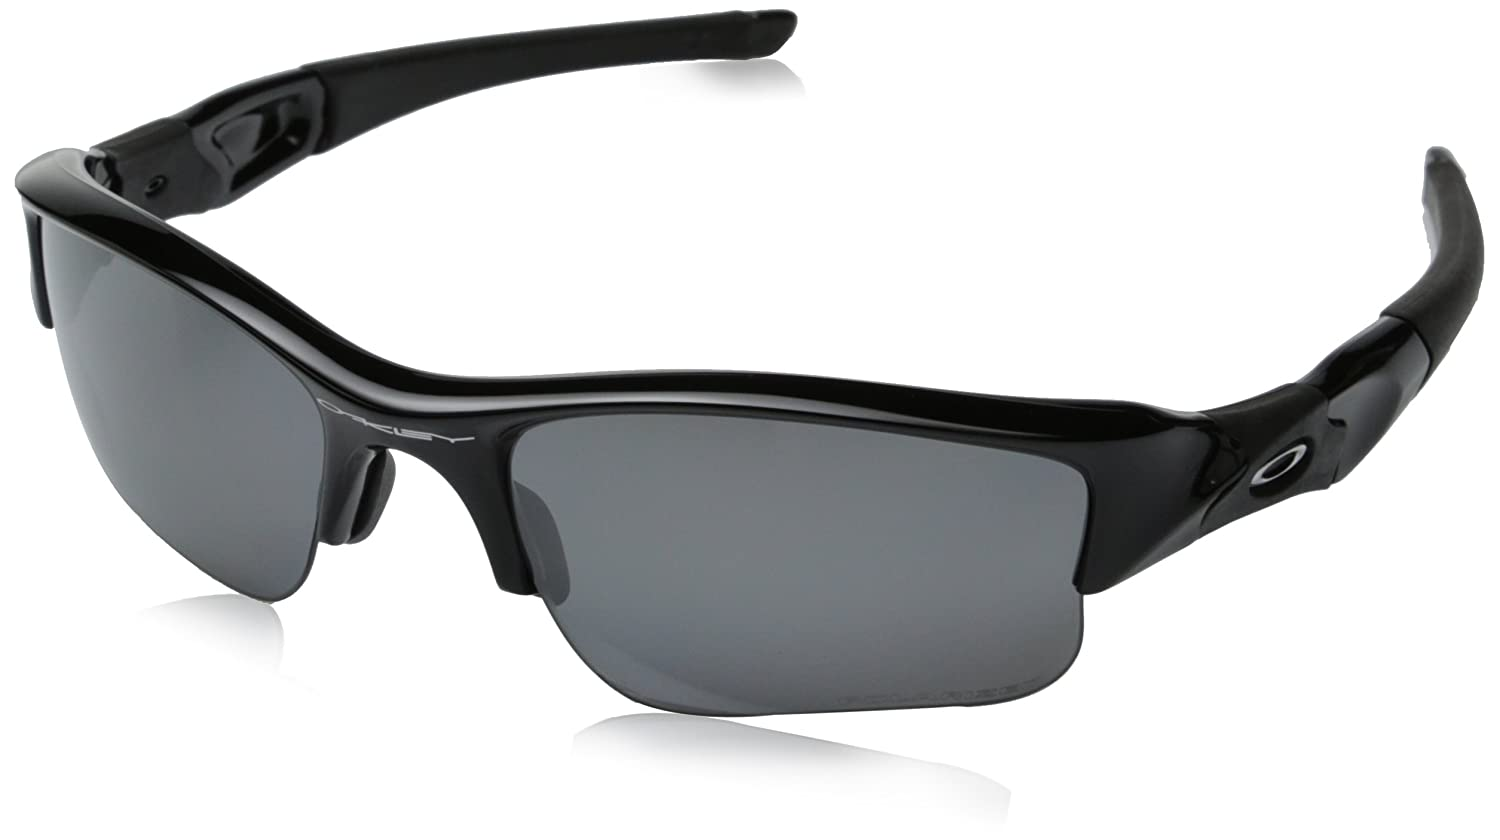 a52651a7a1be Amazon.com  Oakley Men s Flak Jacket XLJ 12-903 Sunglasses